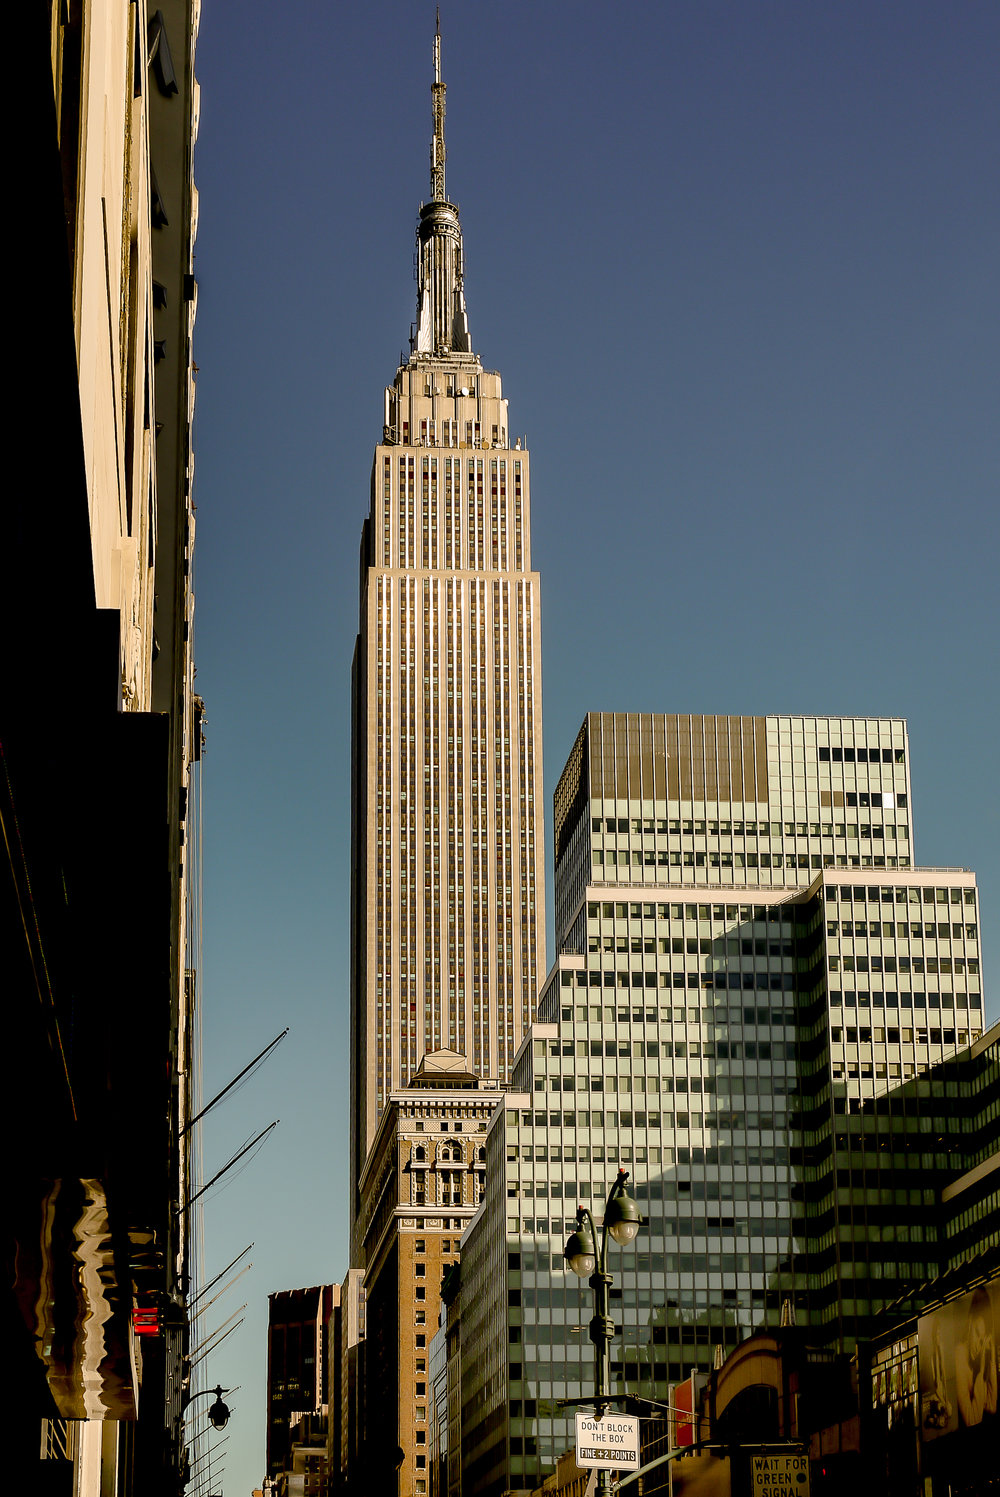 Empire State Building - NYC (US)